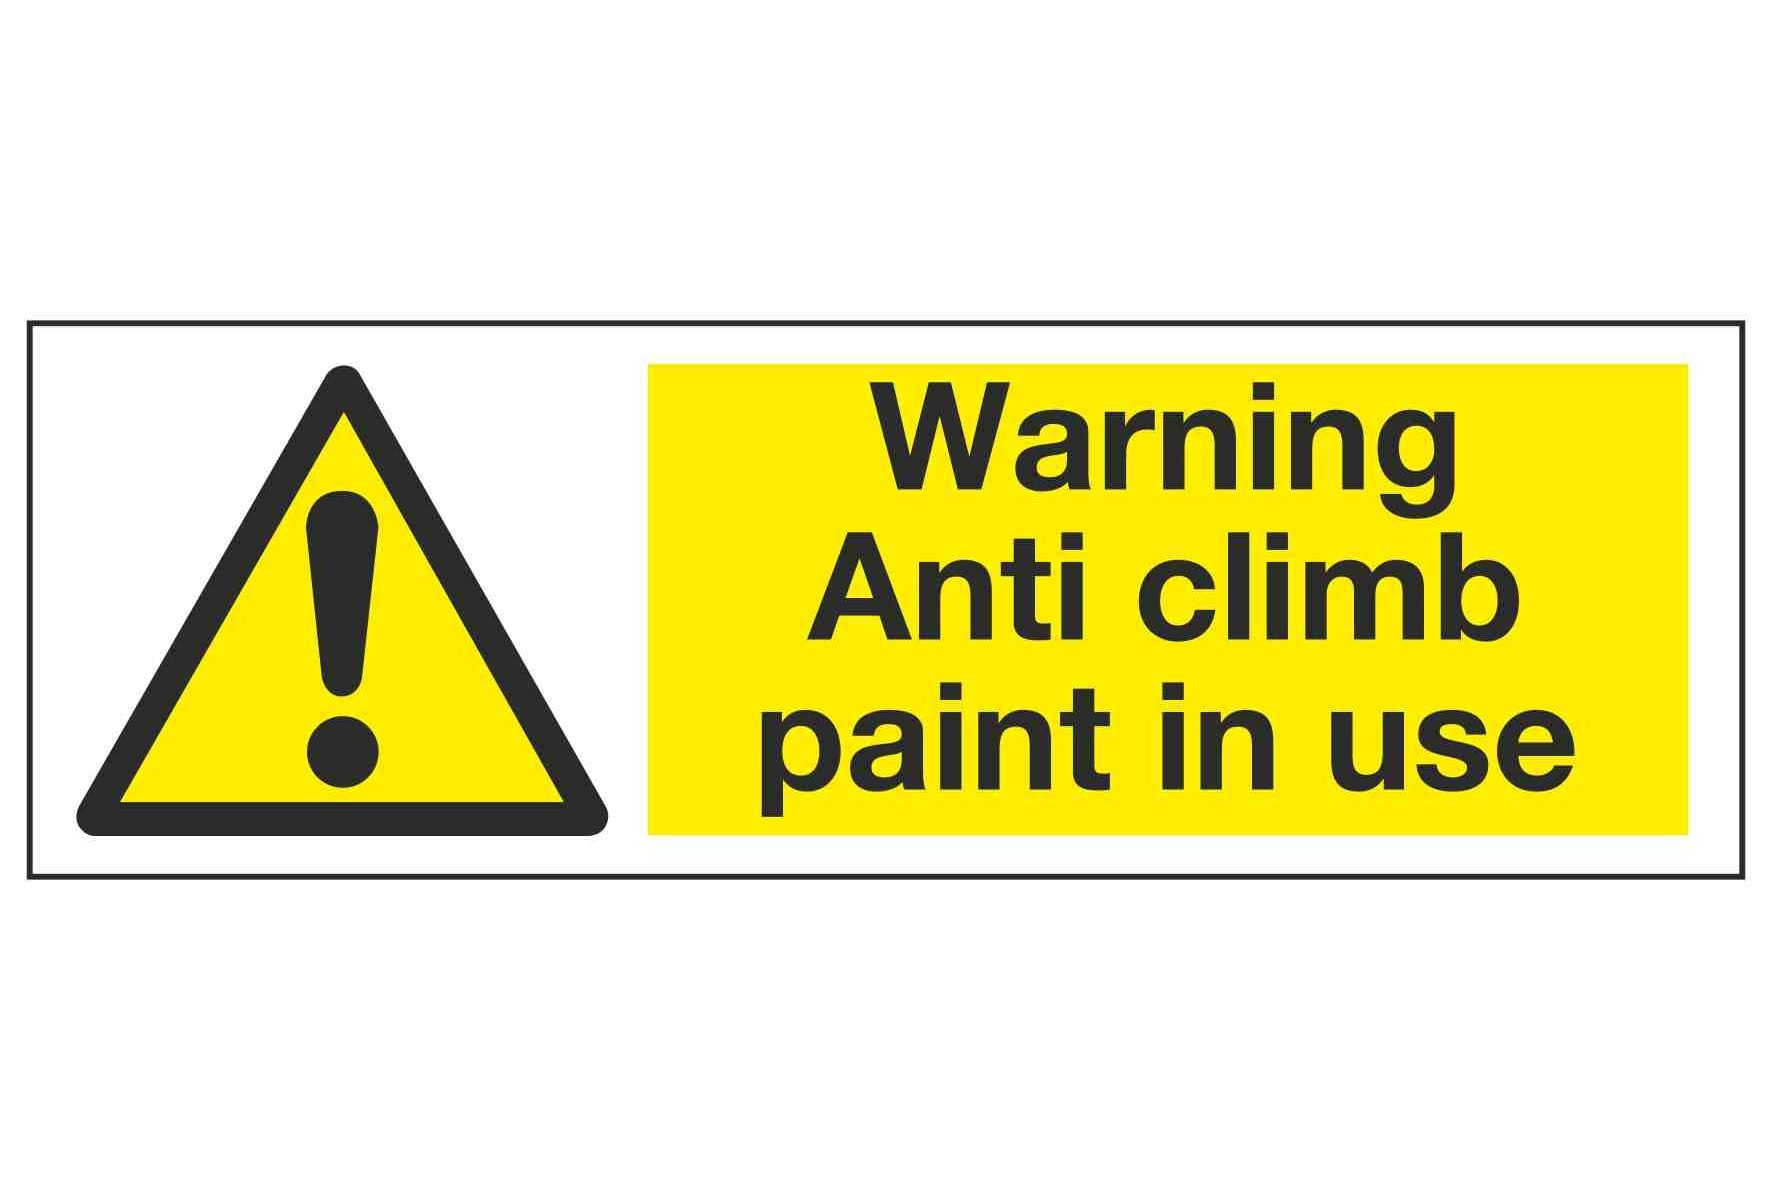 Warning Anti climb paint in use